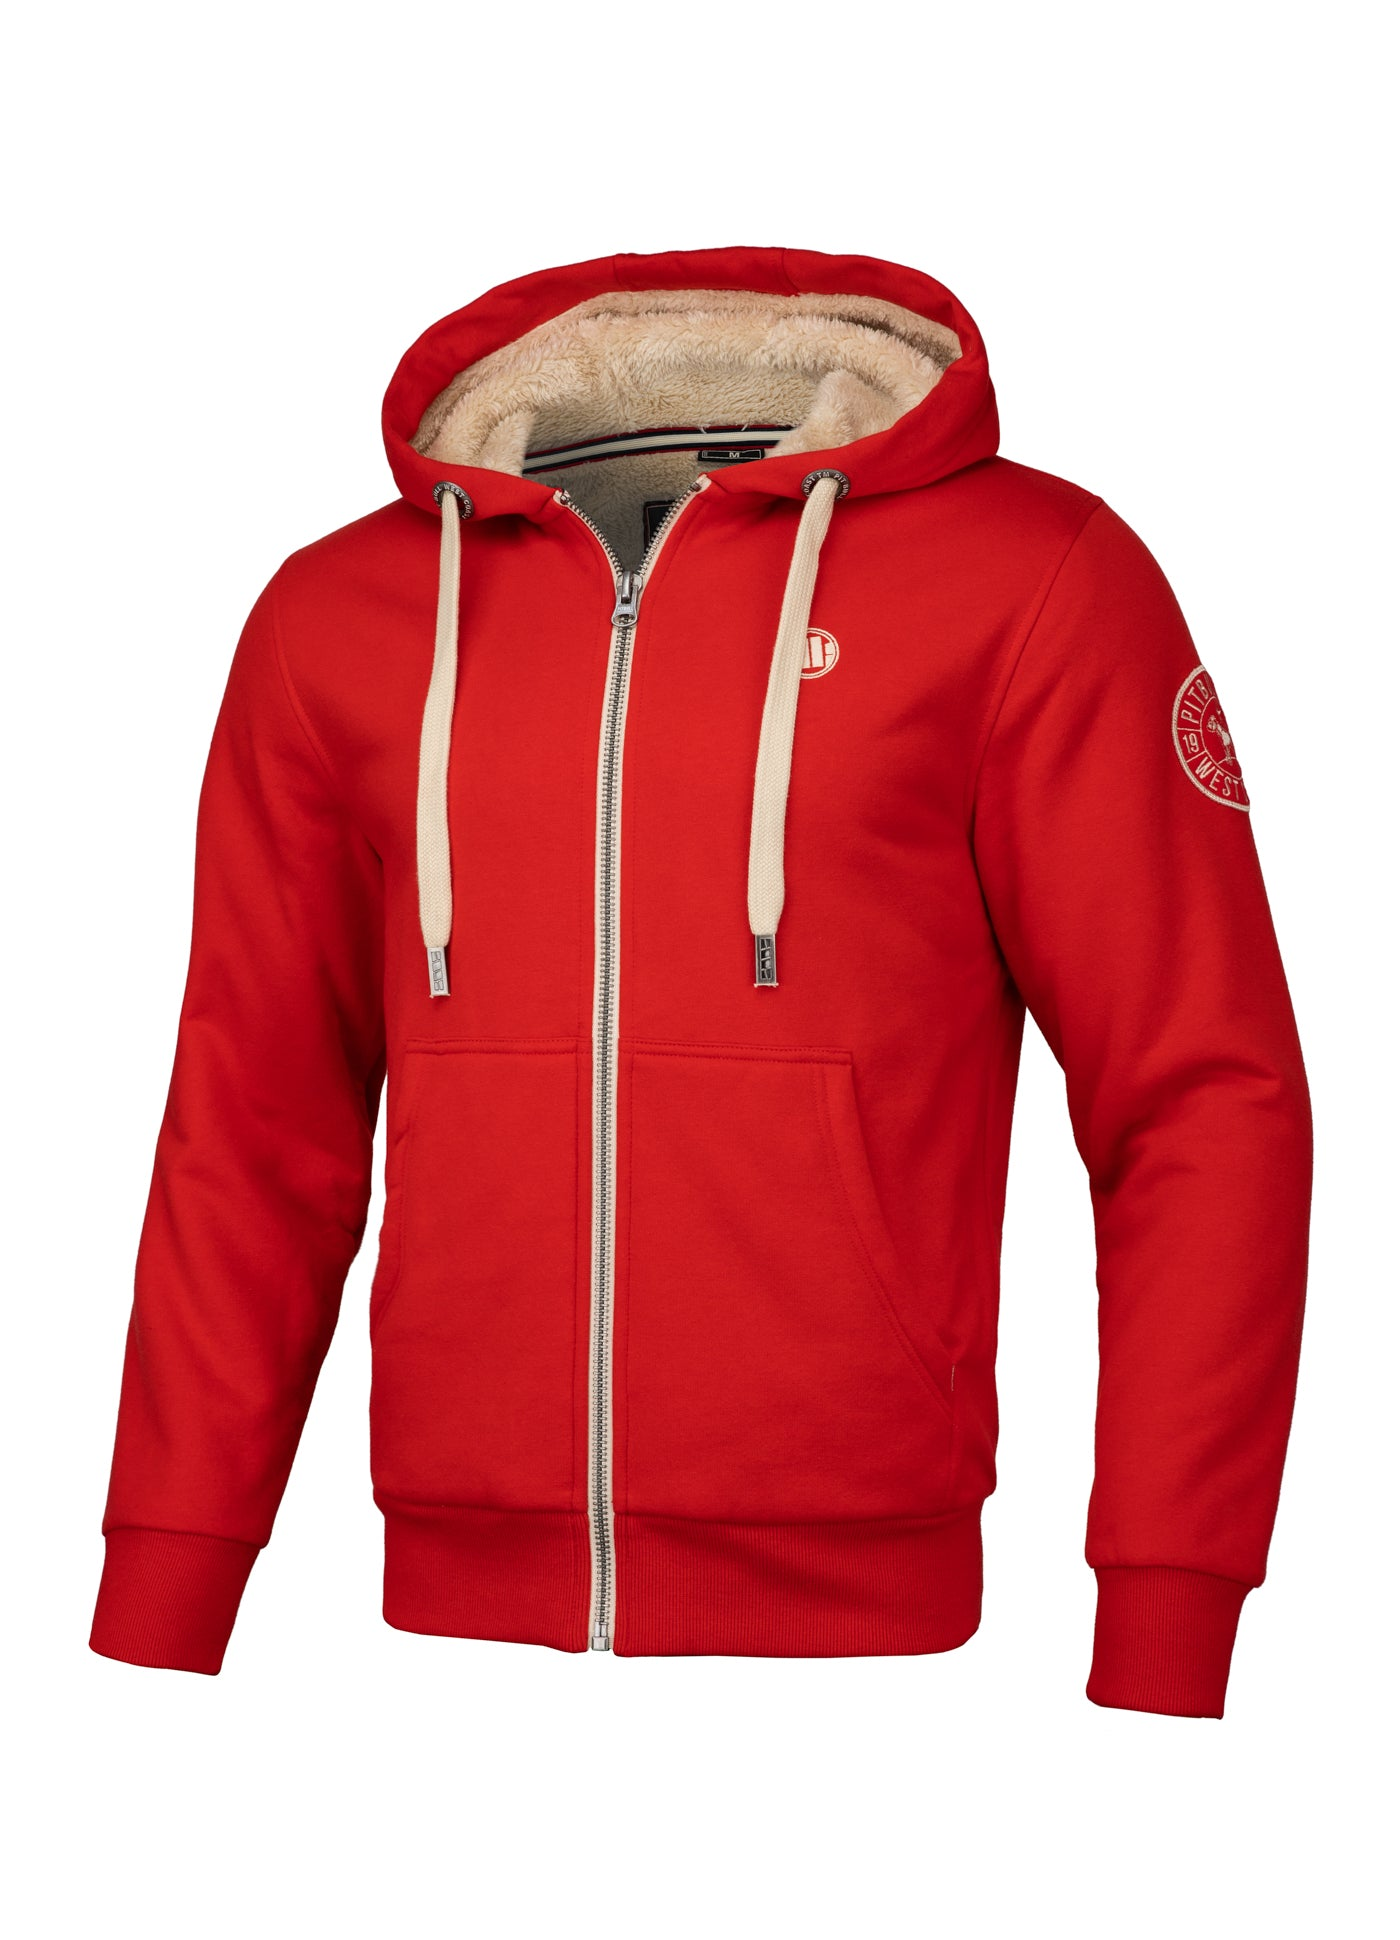 Hooded Sweatjacket SHERPA RUFFIN Red